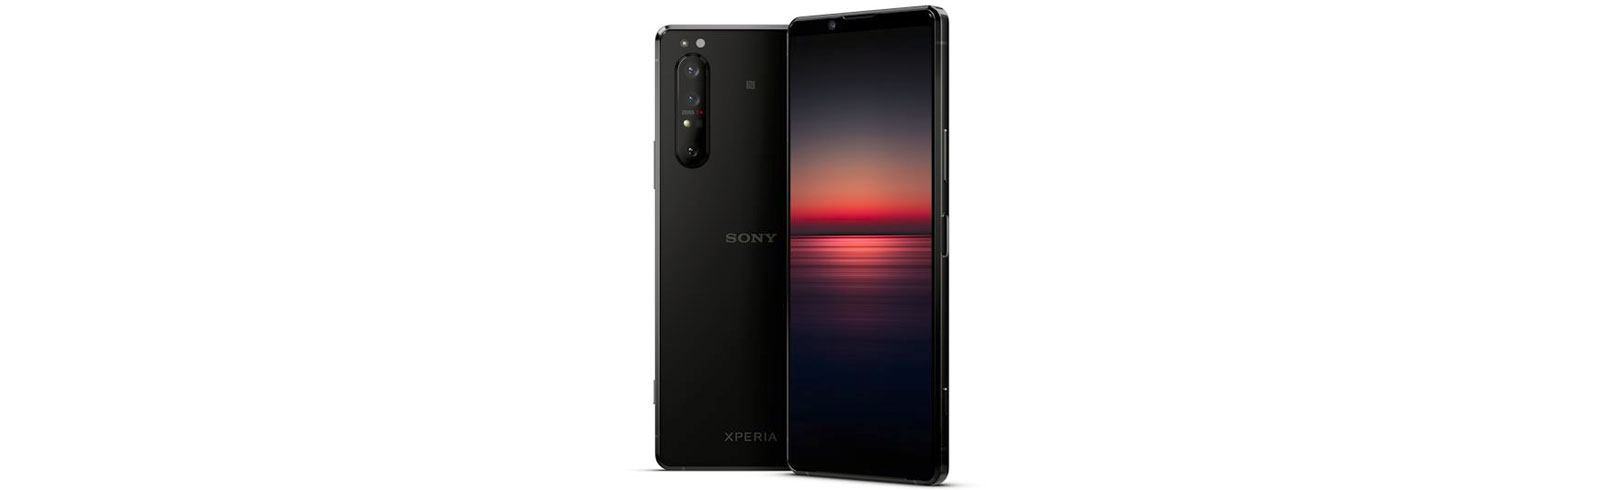 Sony unveils the Xperia Pro and Xperia 1 II